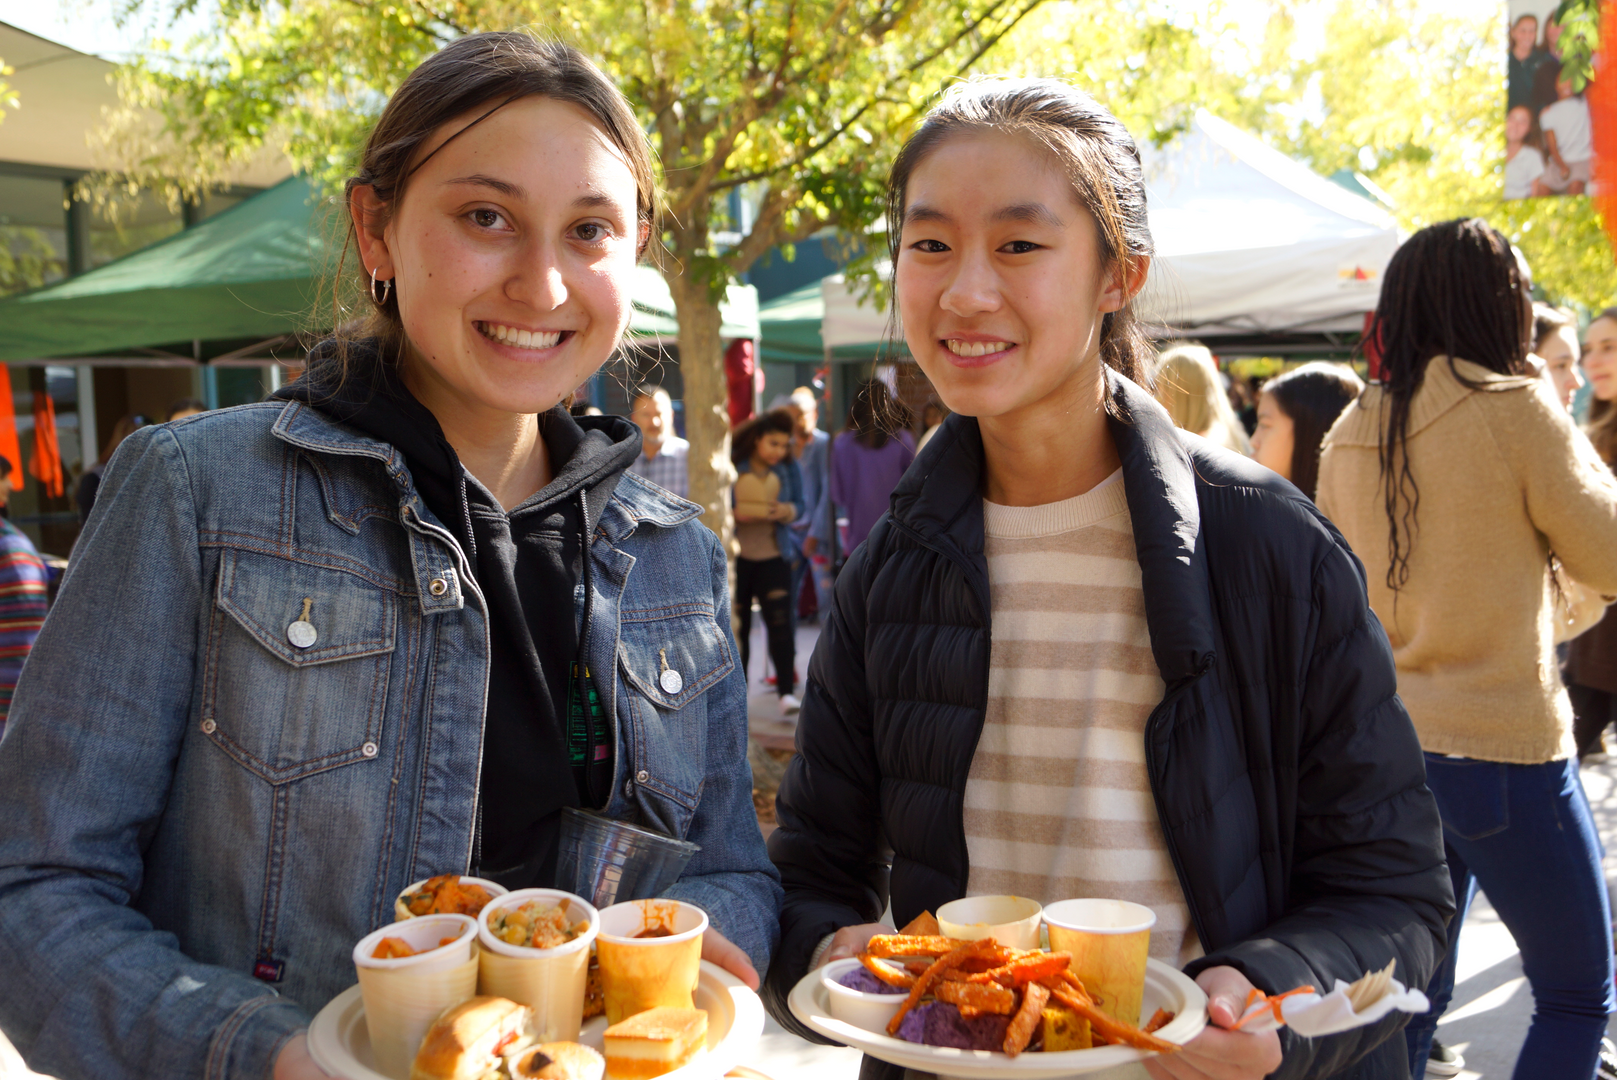 Ava F. '21, and Katrina W. '21 in line to get their yam fries